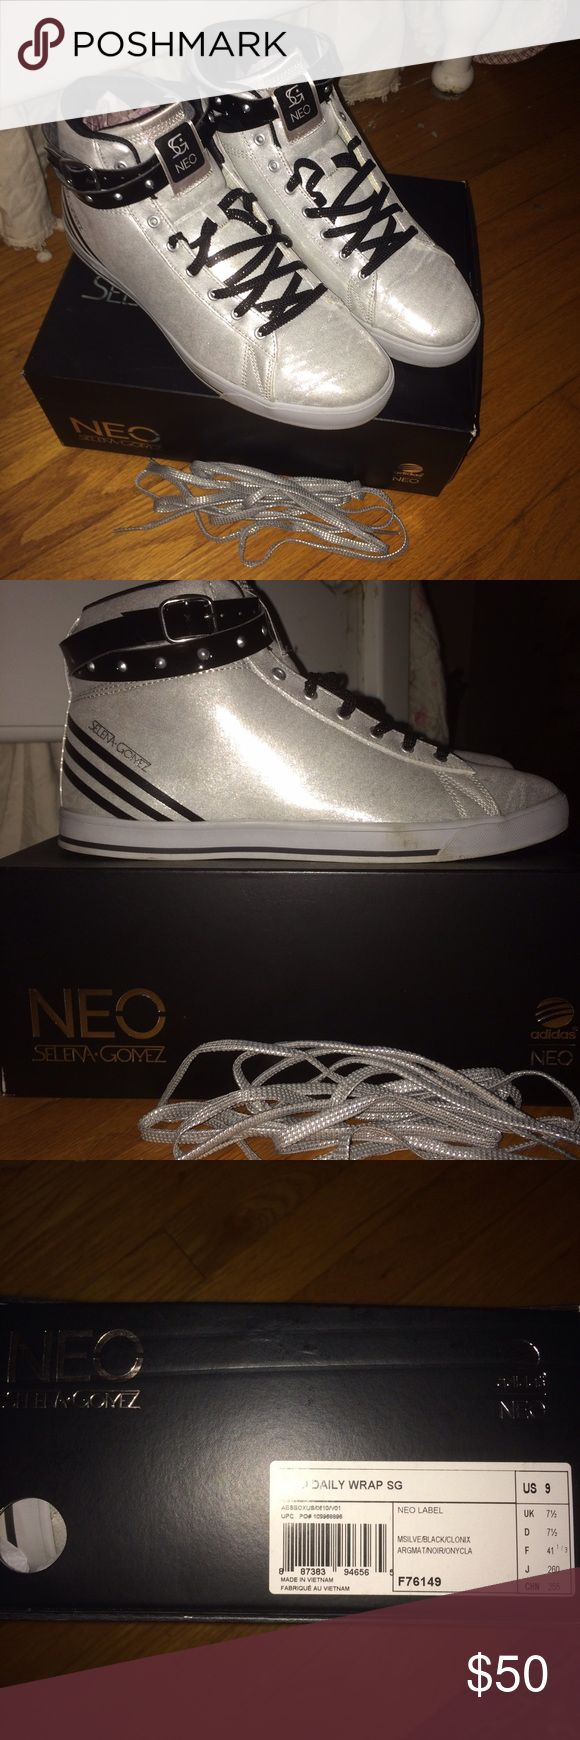 Adidas Neo high tops by Selena Gomez Size 9 Adidas Shoes Sneakers